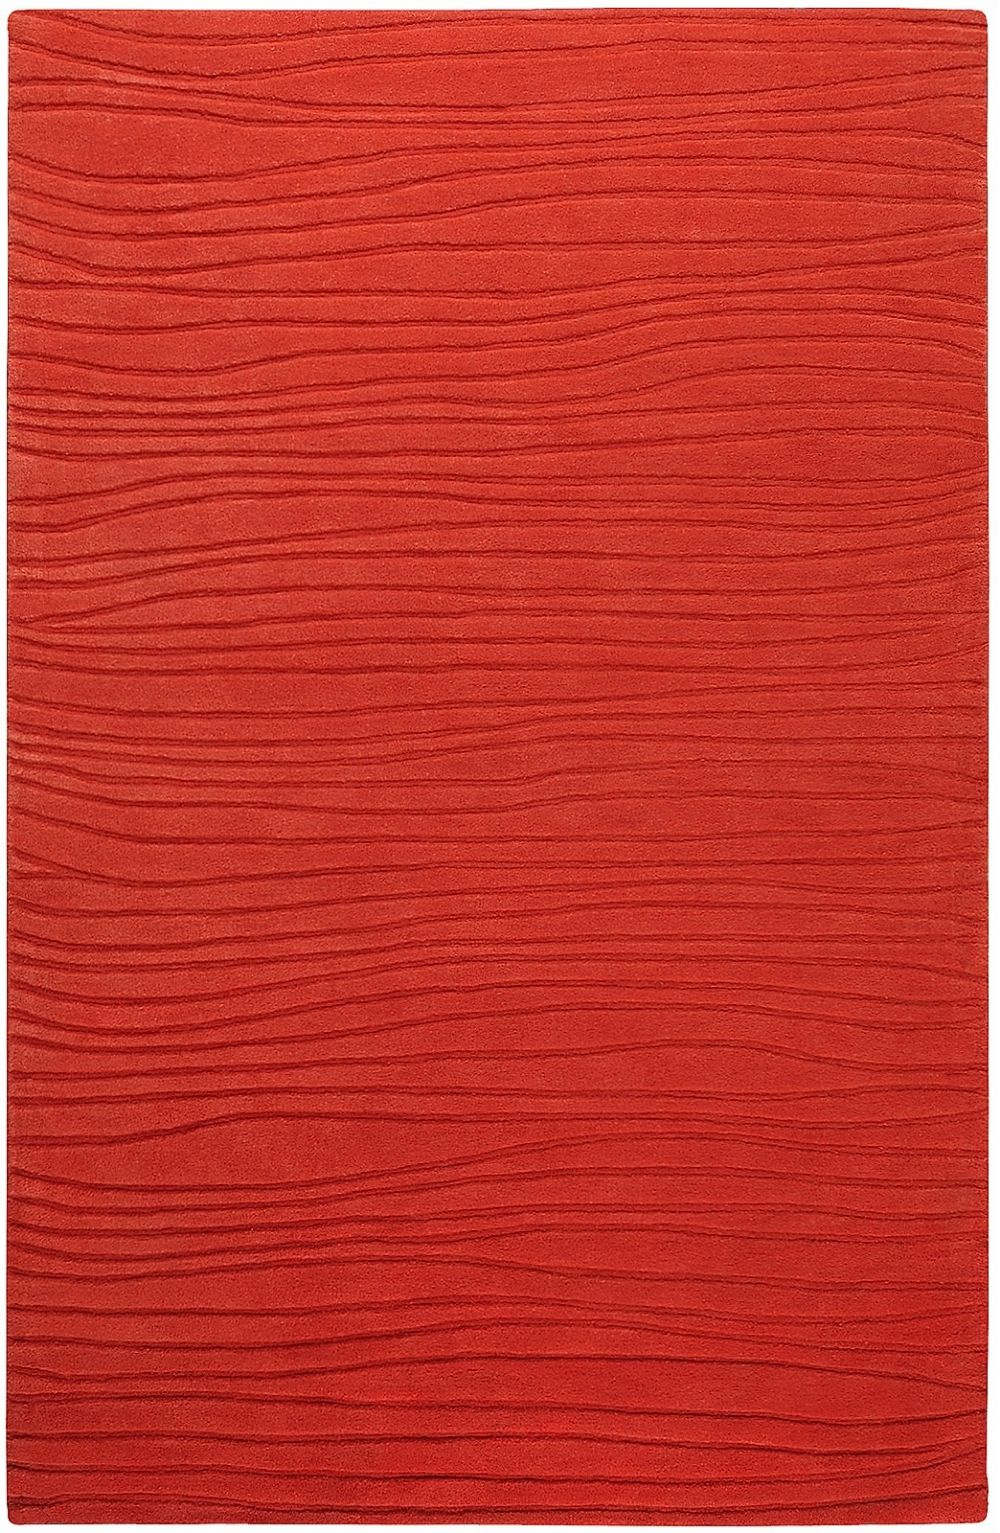 surya artist studio solid/striped area rug collection